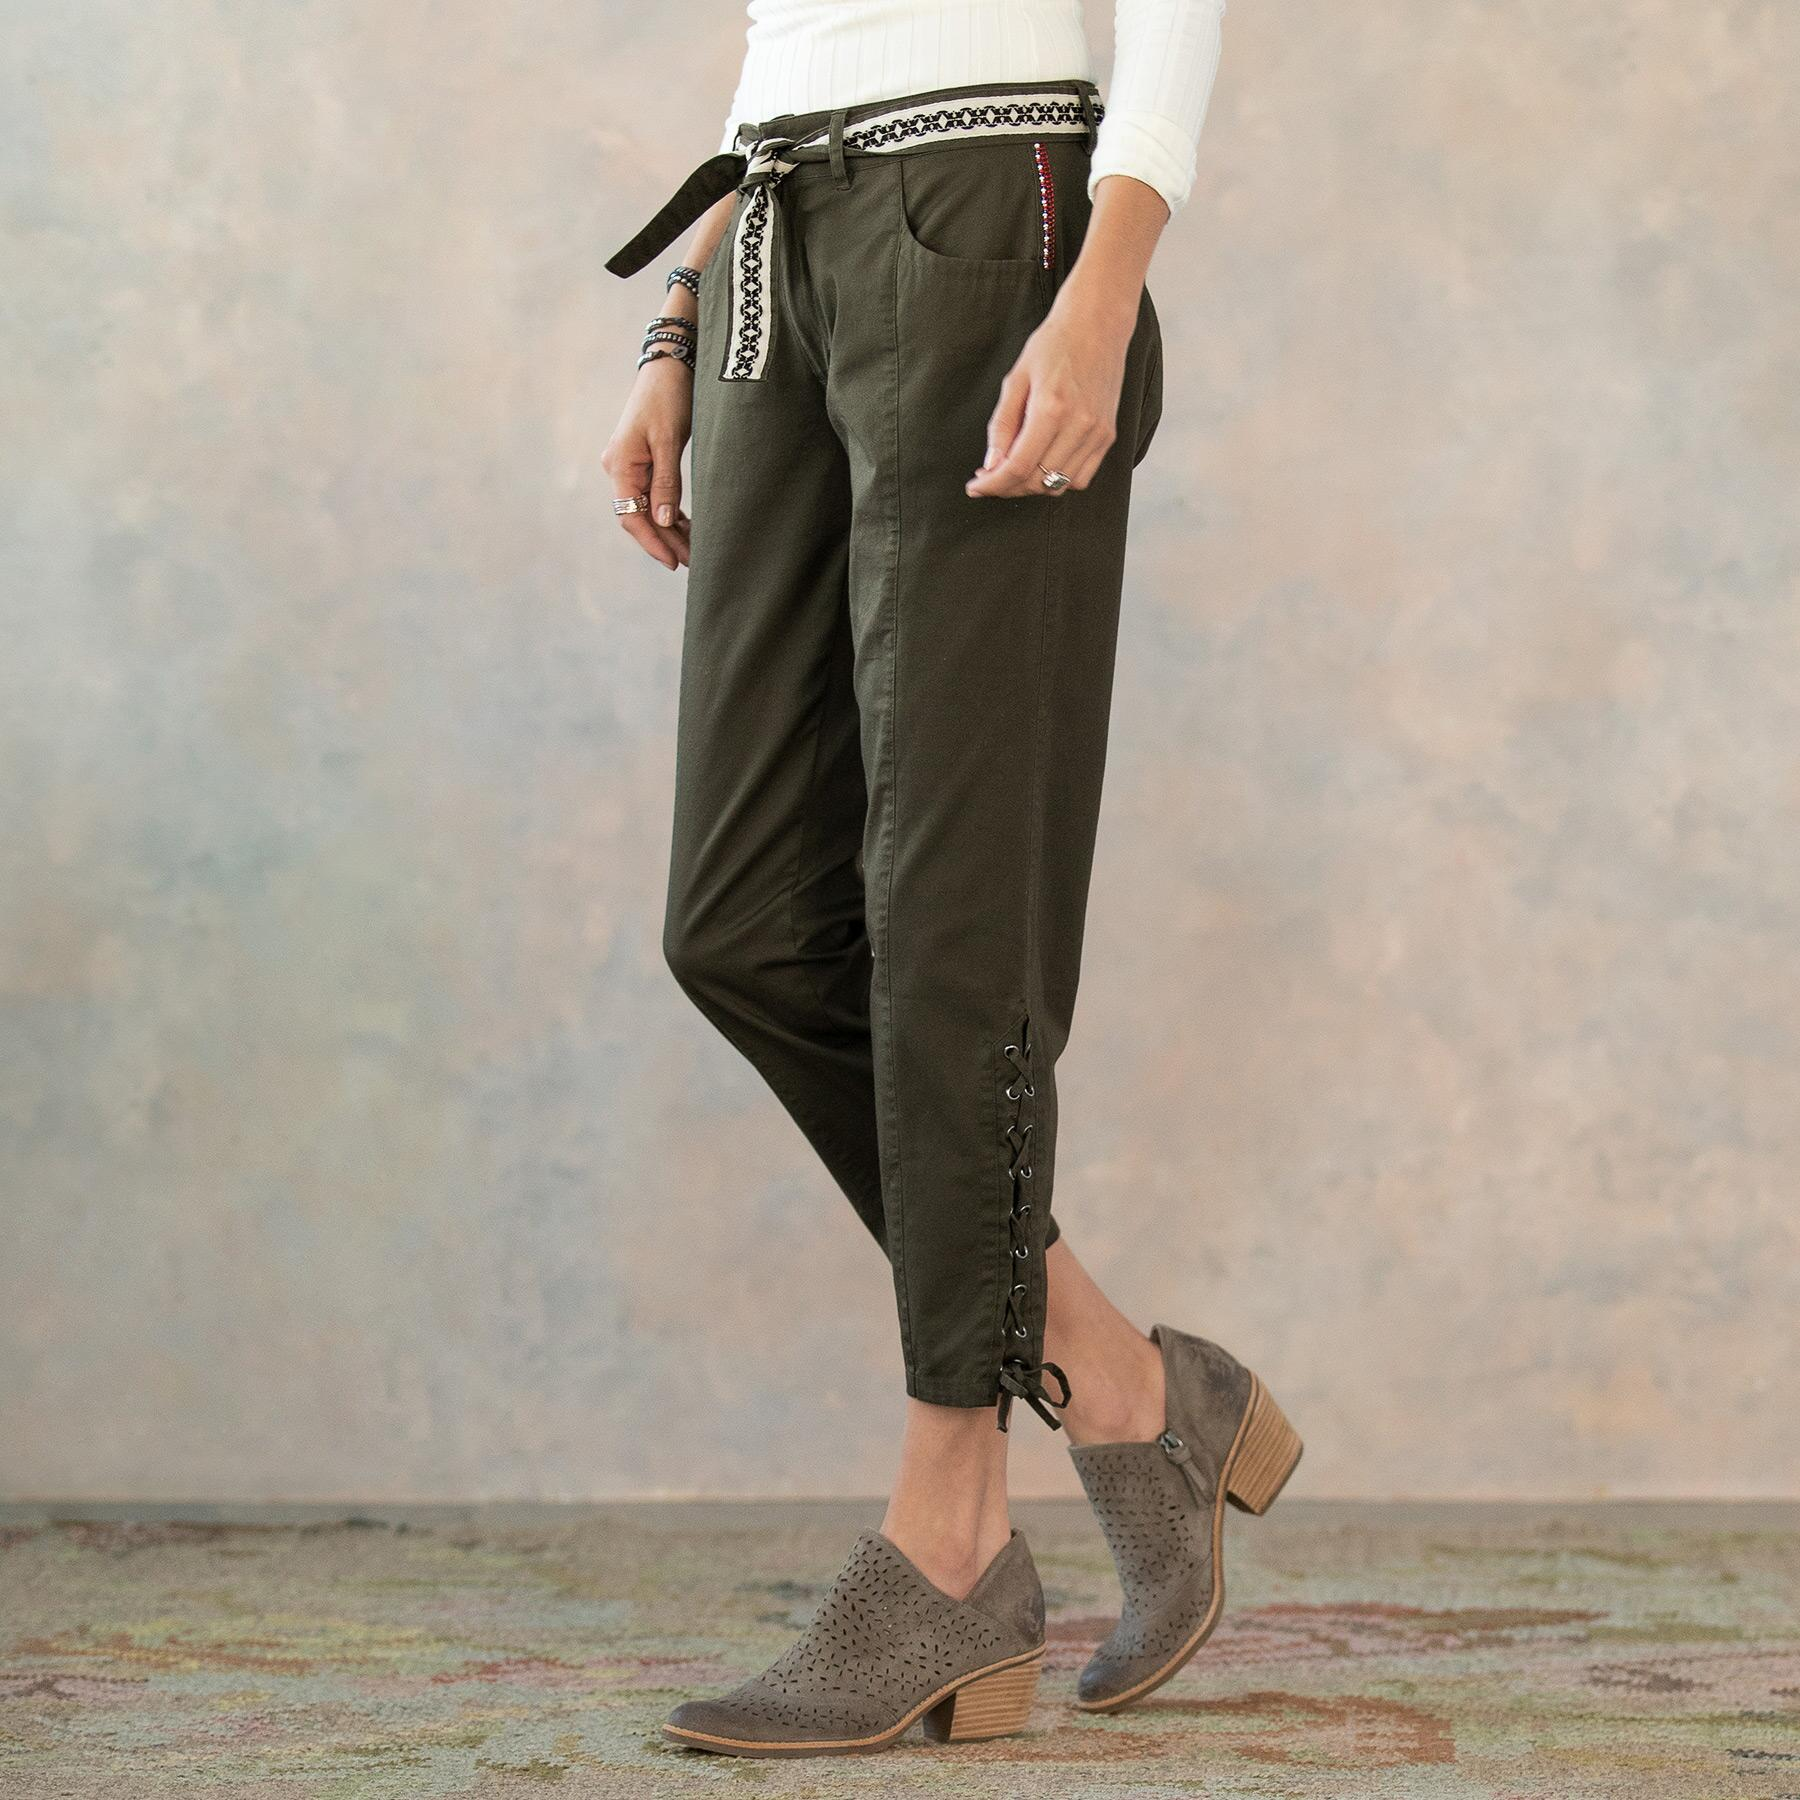 ANKLE DETAIL LACE UP PANTS: View 5